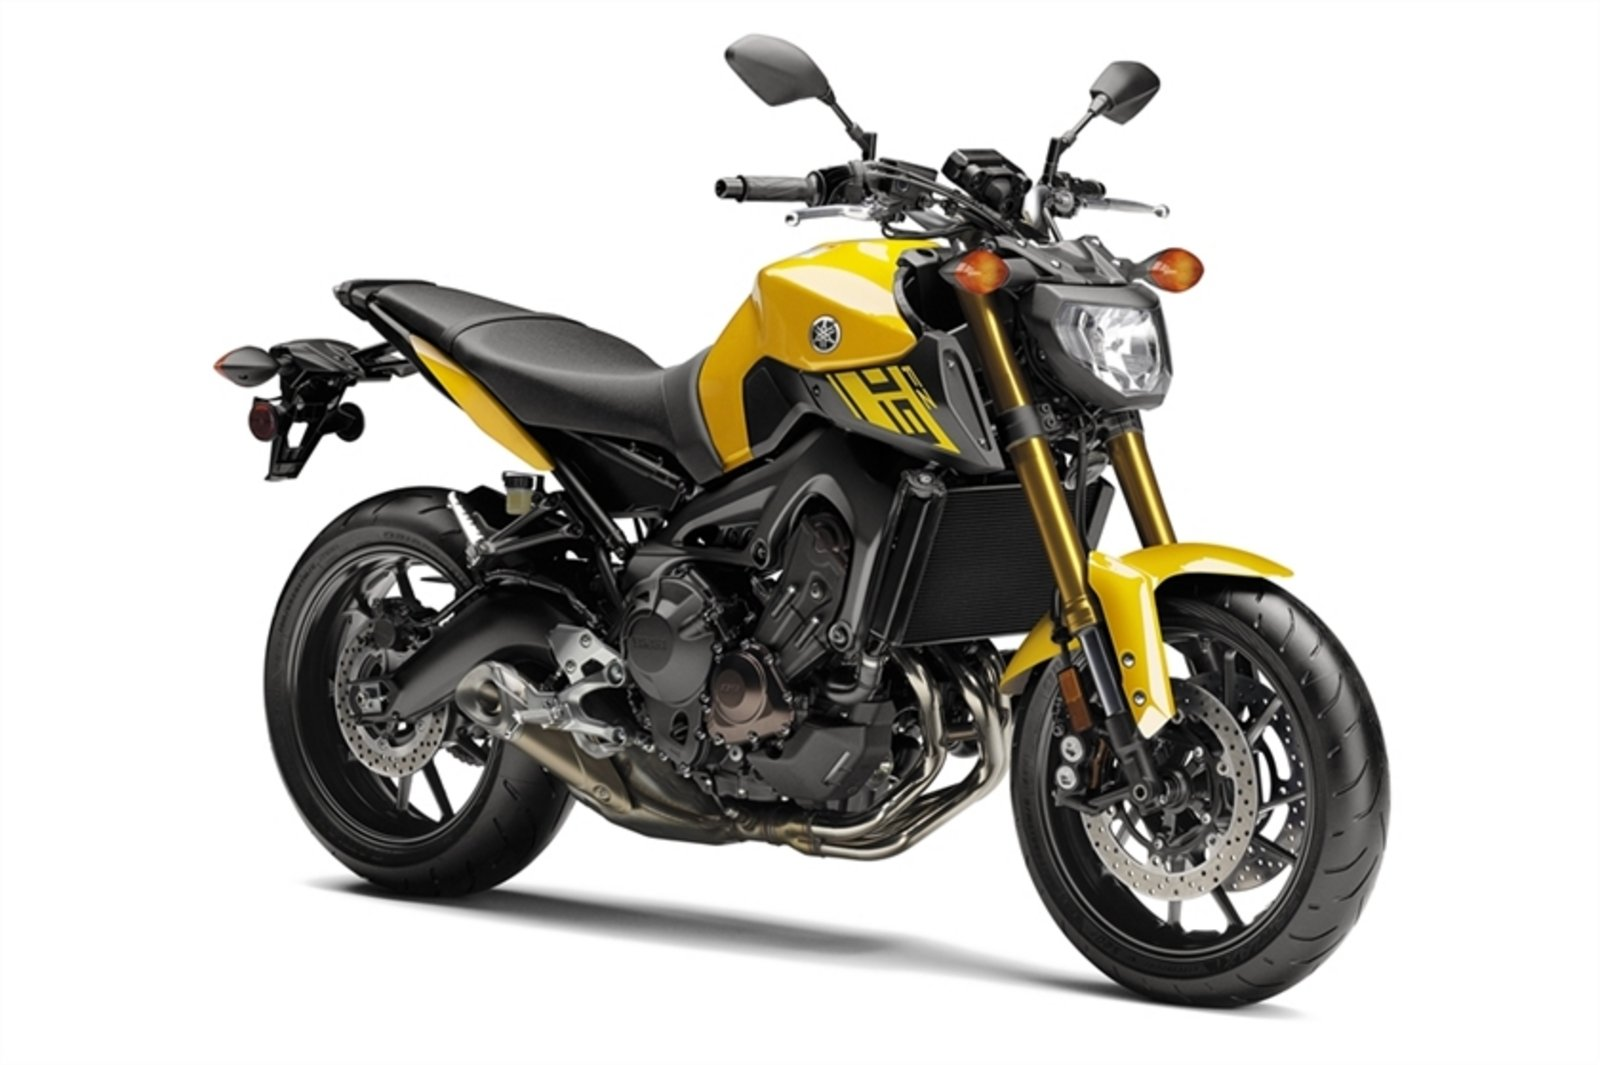 Best Value Touring Motorcycle